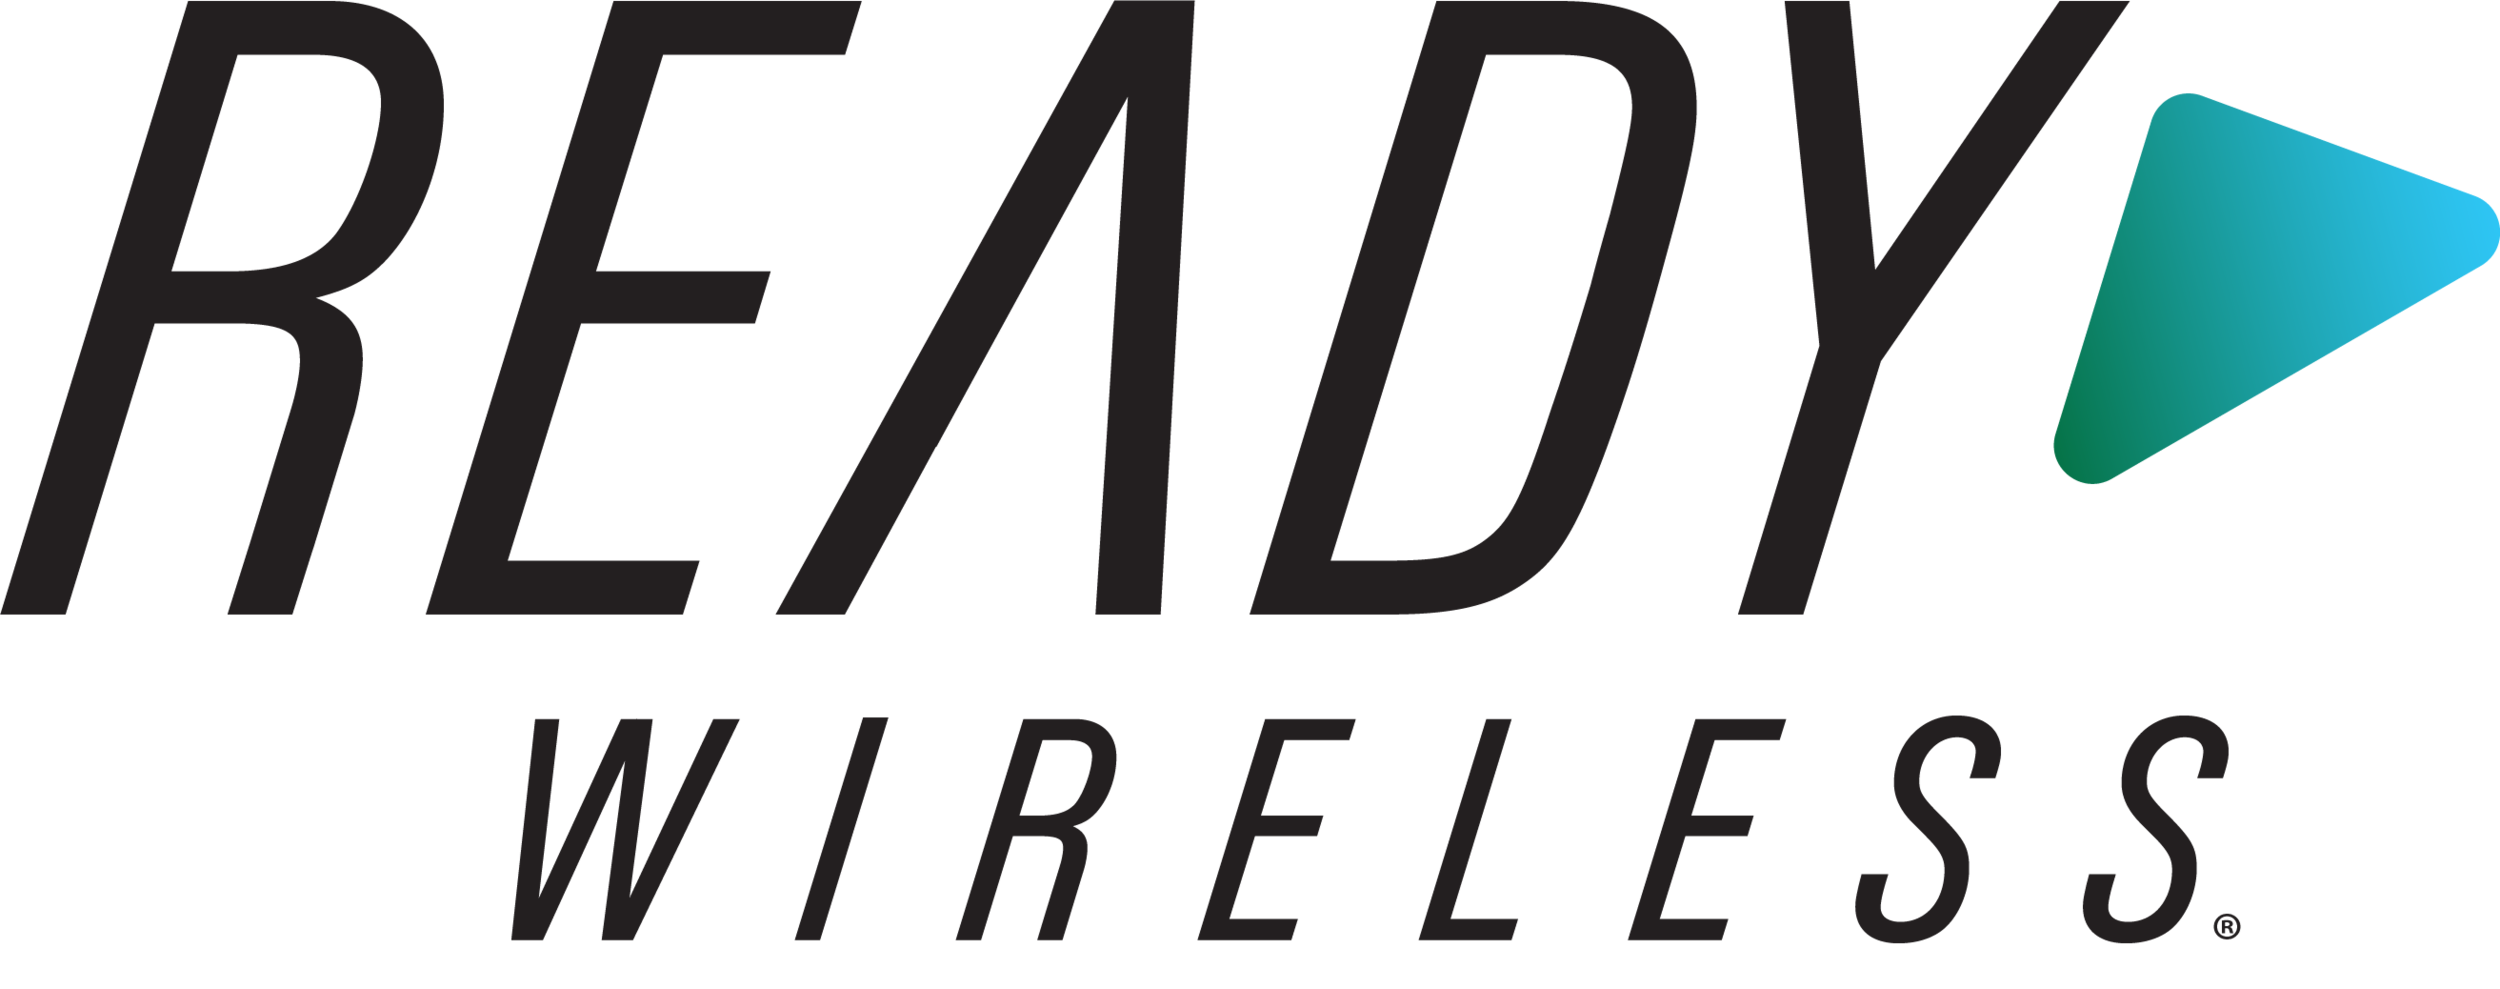 Ready Wireless logo